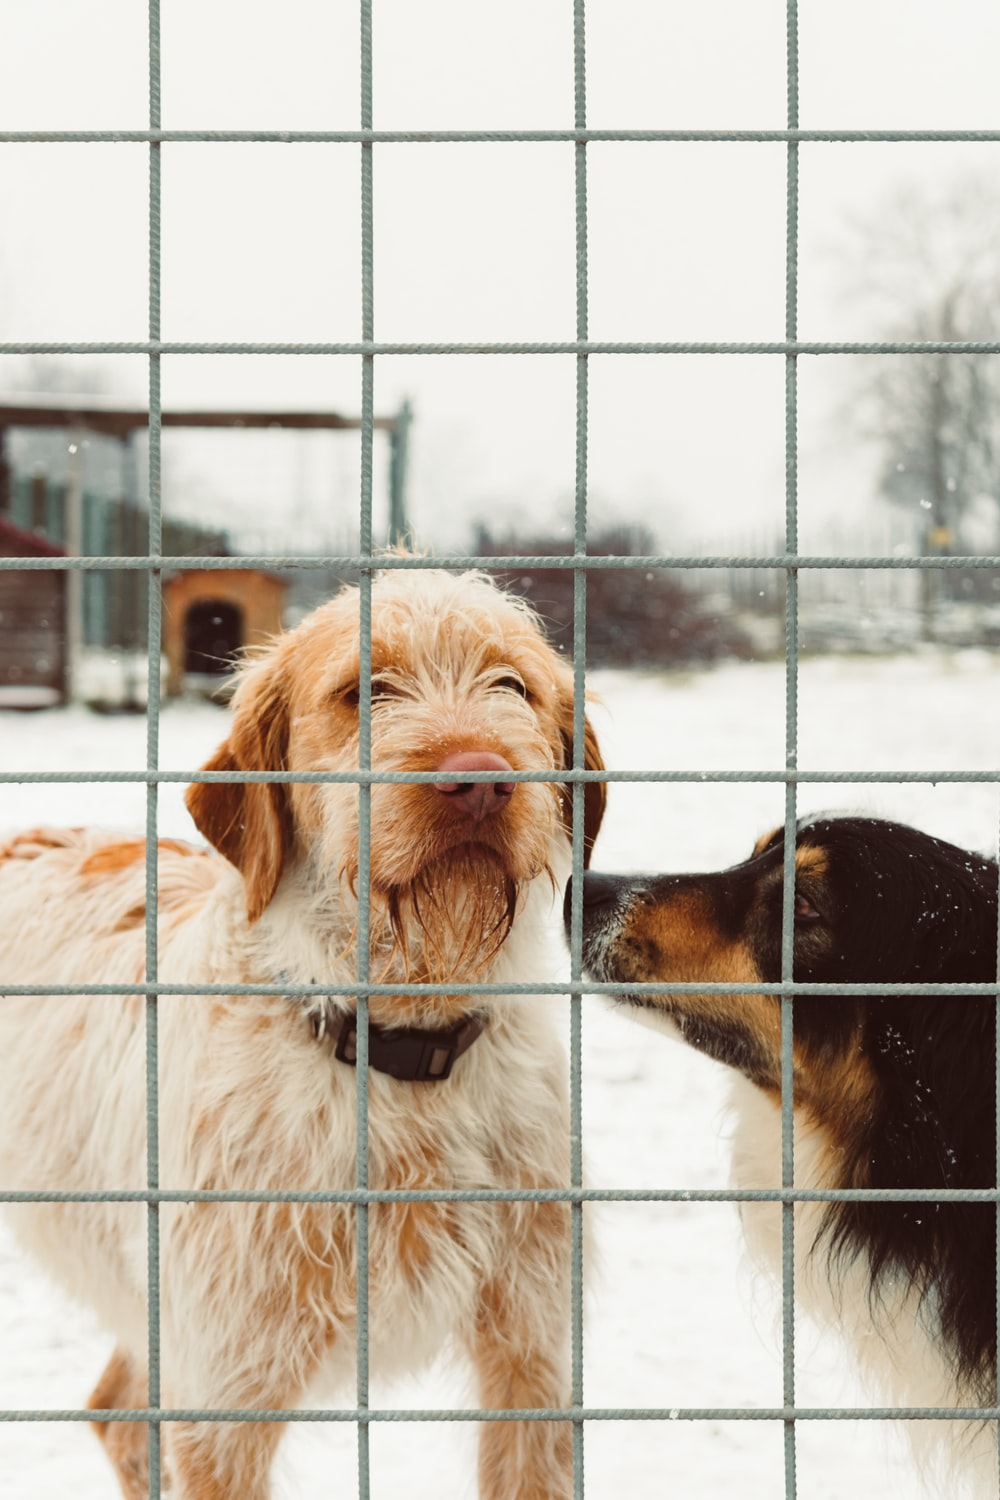 two dog standing over gray fence